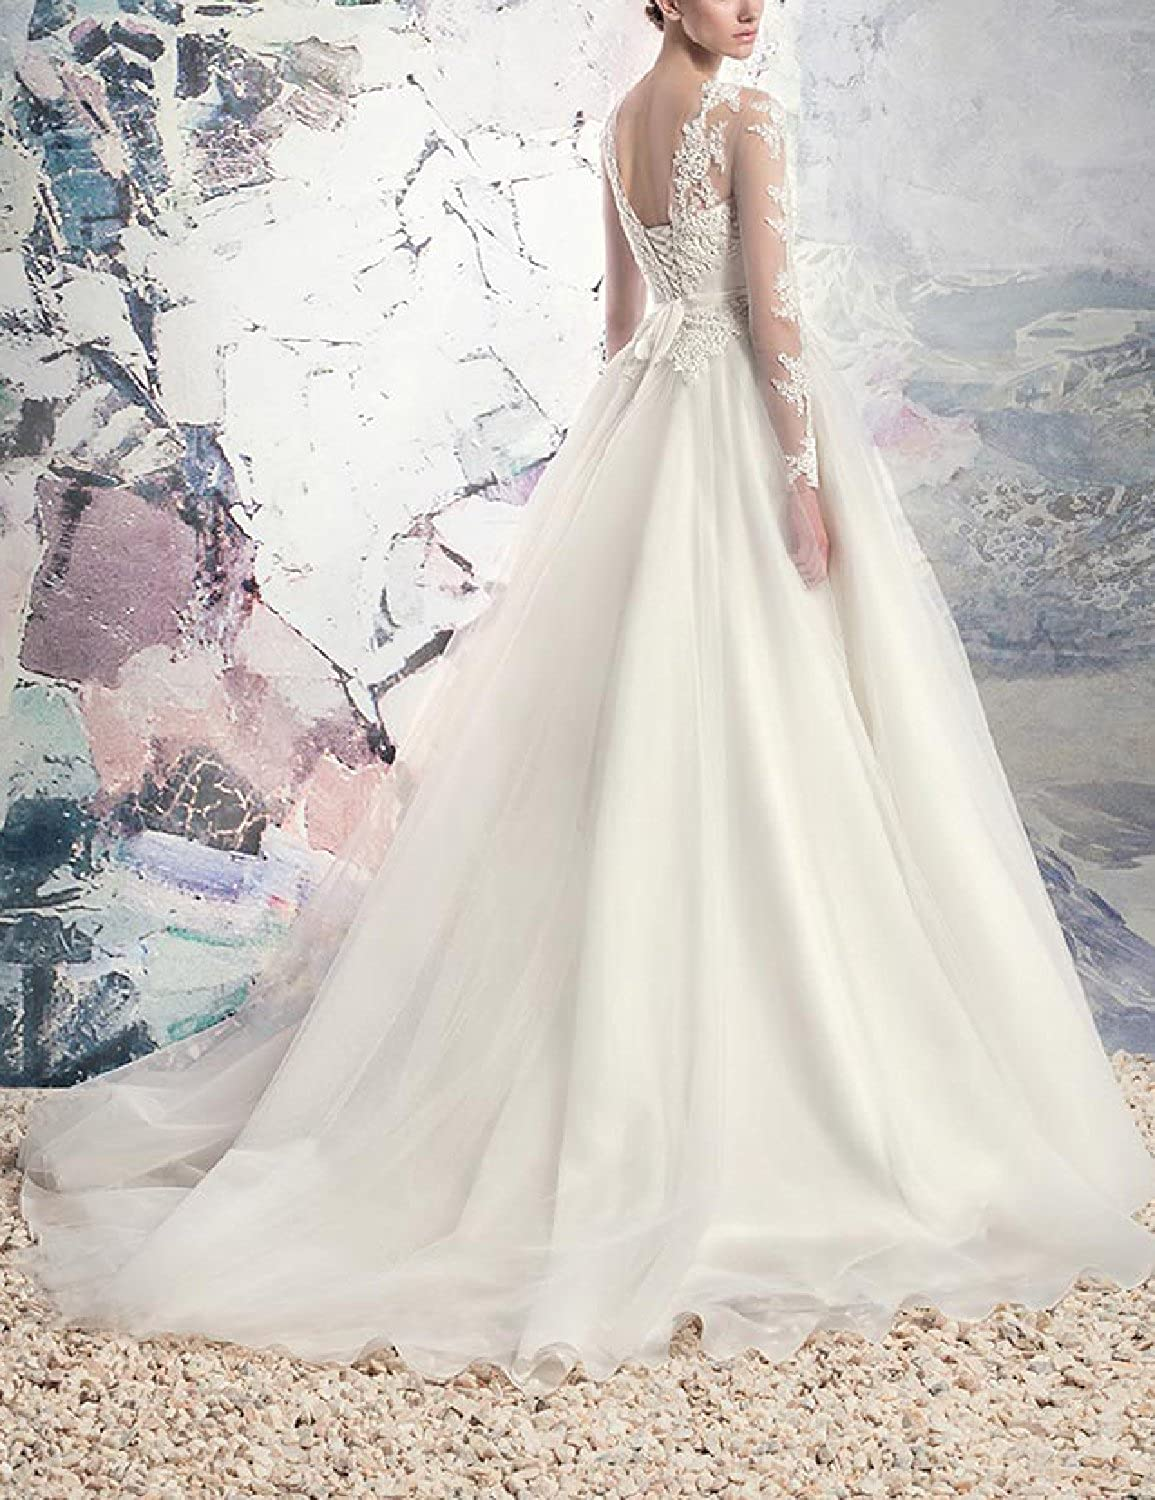 YSMei Womens Long Sleeve Lace Appliqued Bodice Tulle Wedding Bridal Gown YWD068